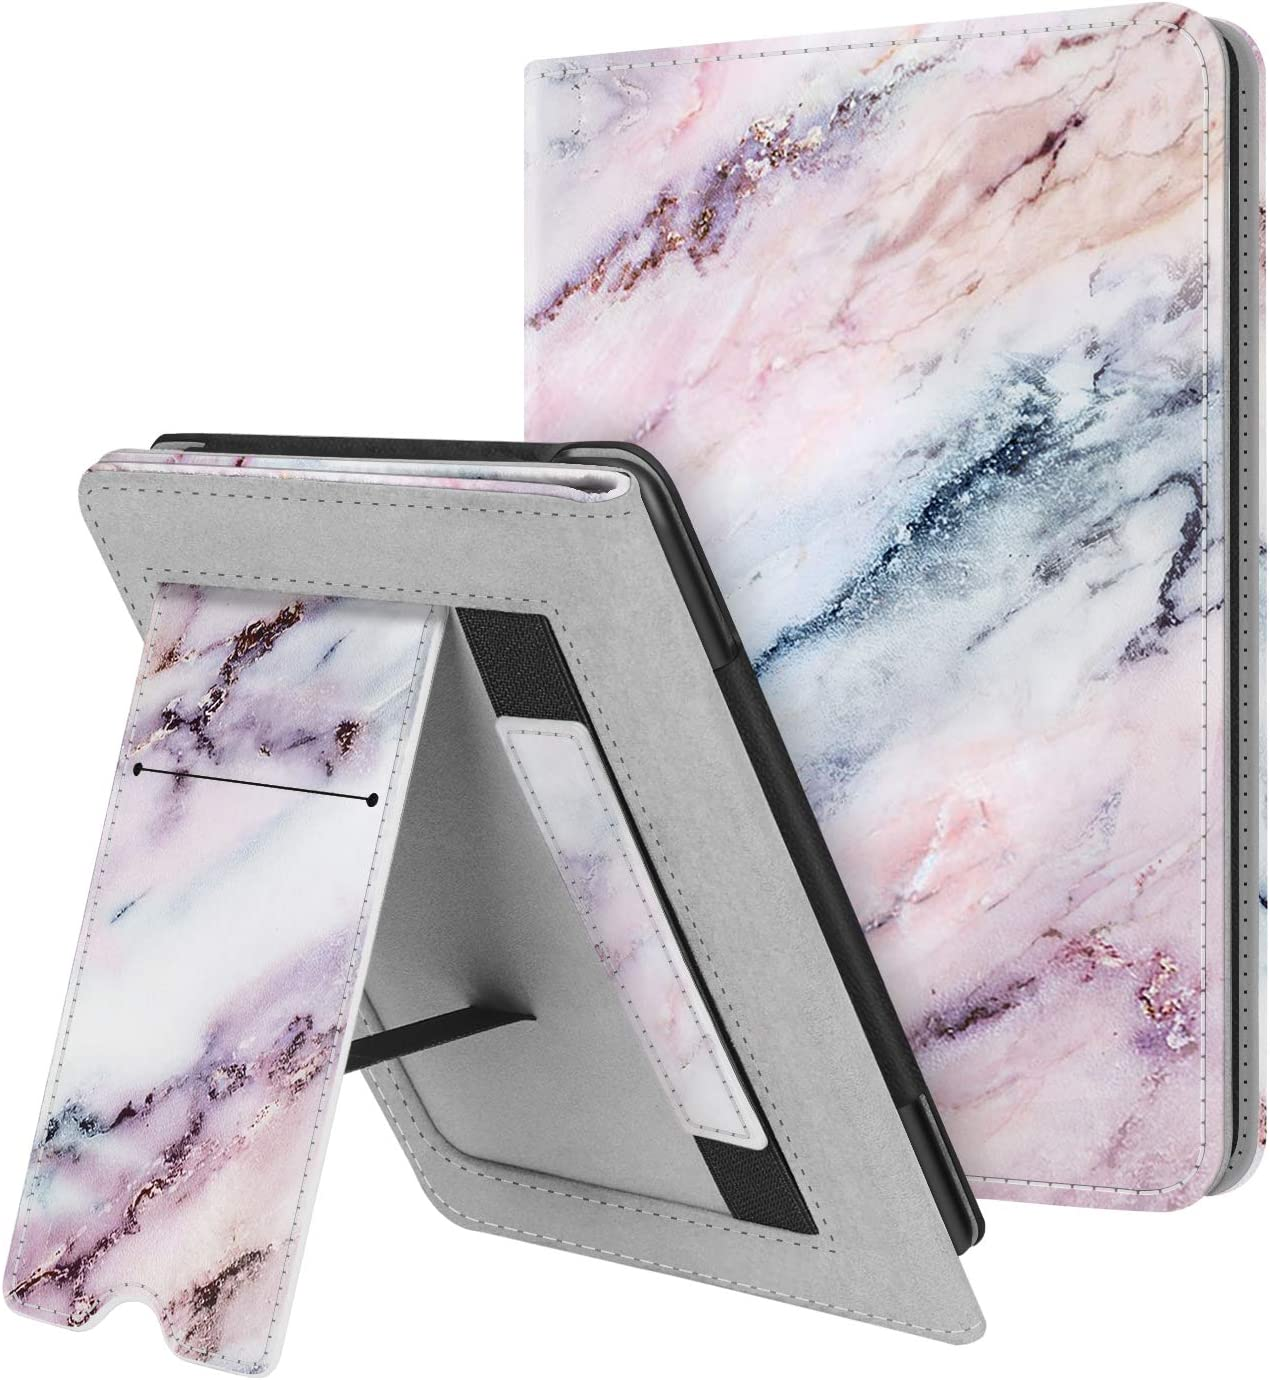 Fintie Stand Tucson Mall Case for Kindle Paperwhite 10th Recommendation All-New Fits Gener